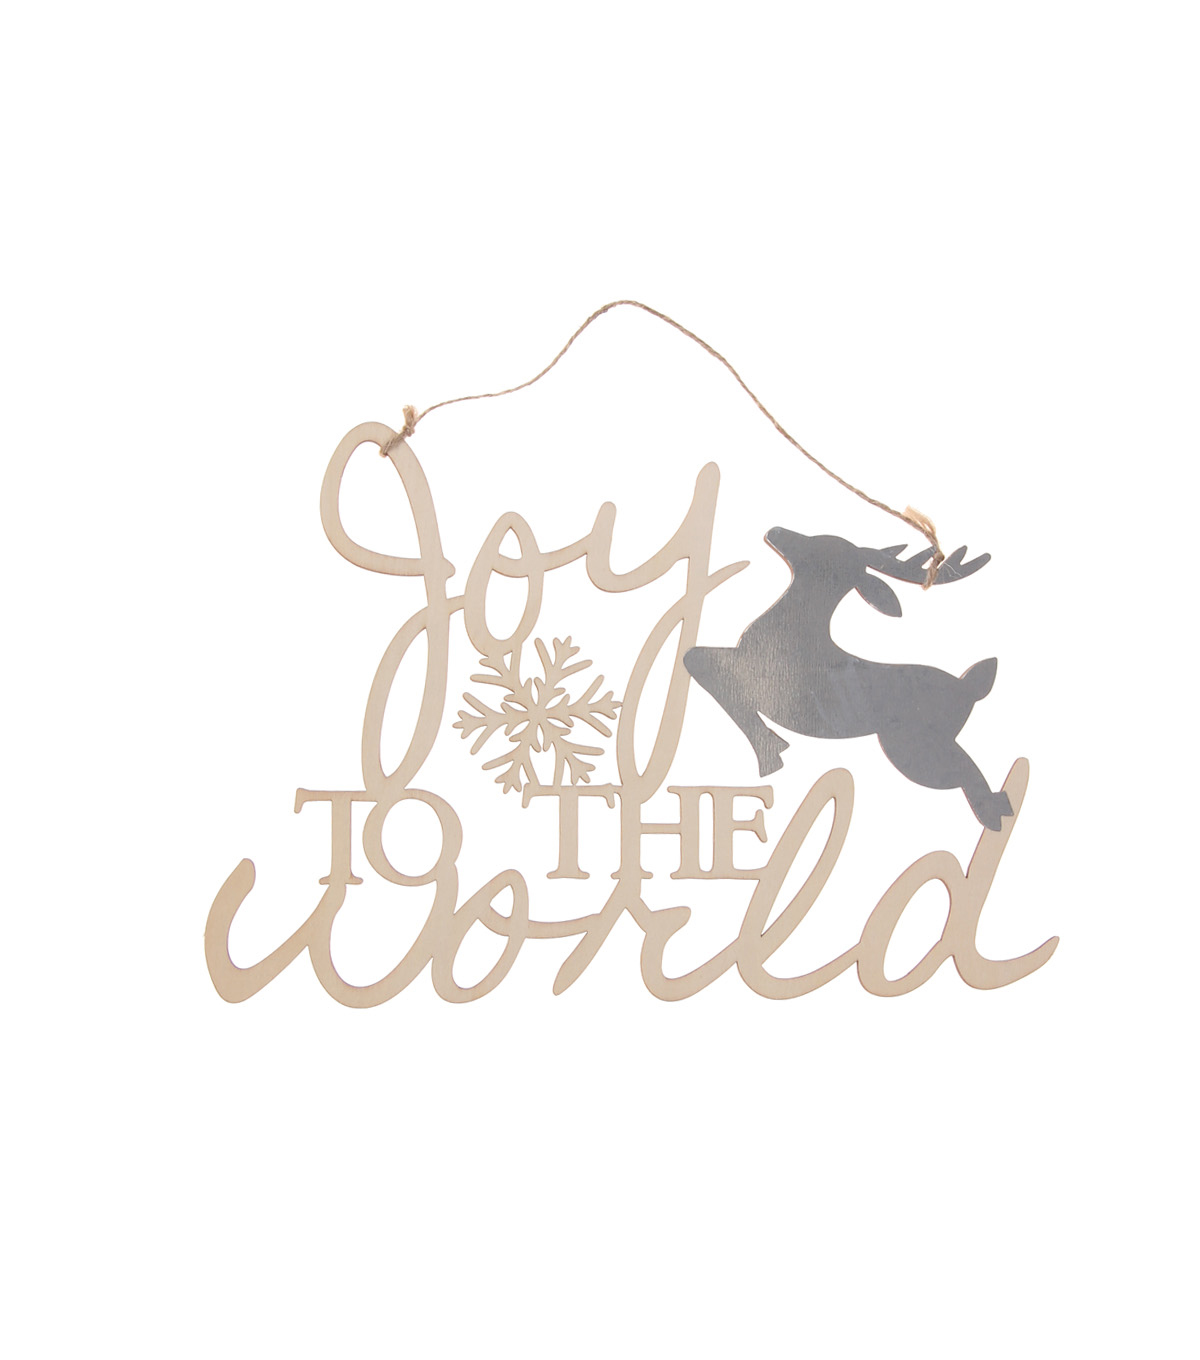 Handmade Holiday Craft Laser Cut Wood & Metal Sign-Joy to the World